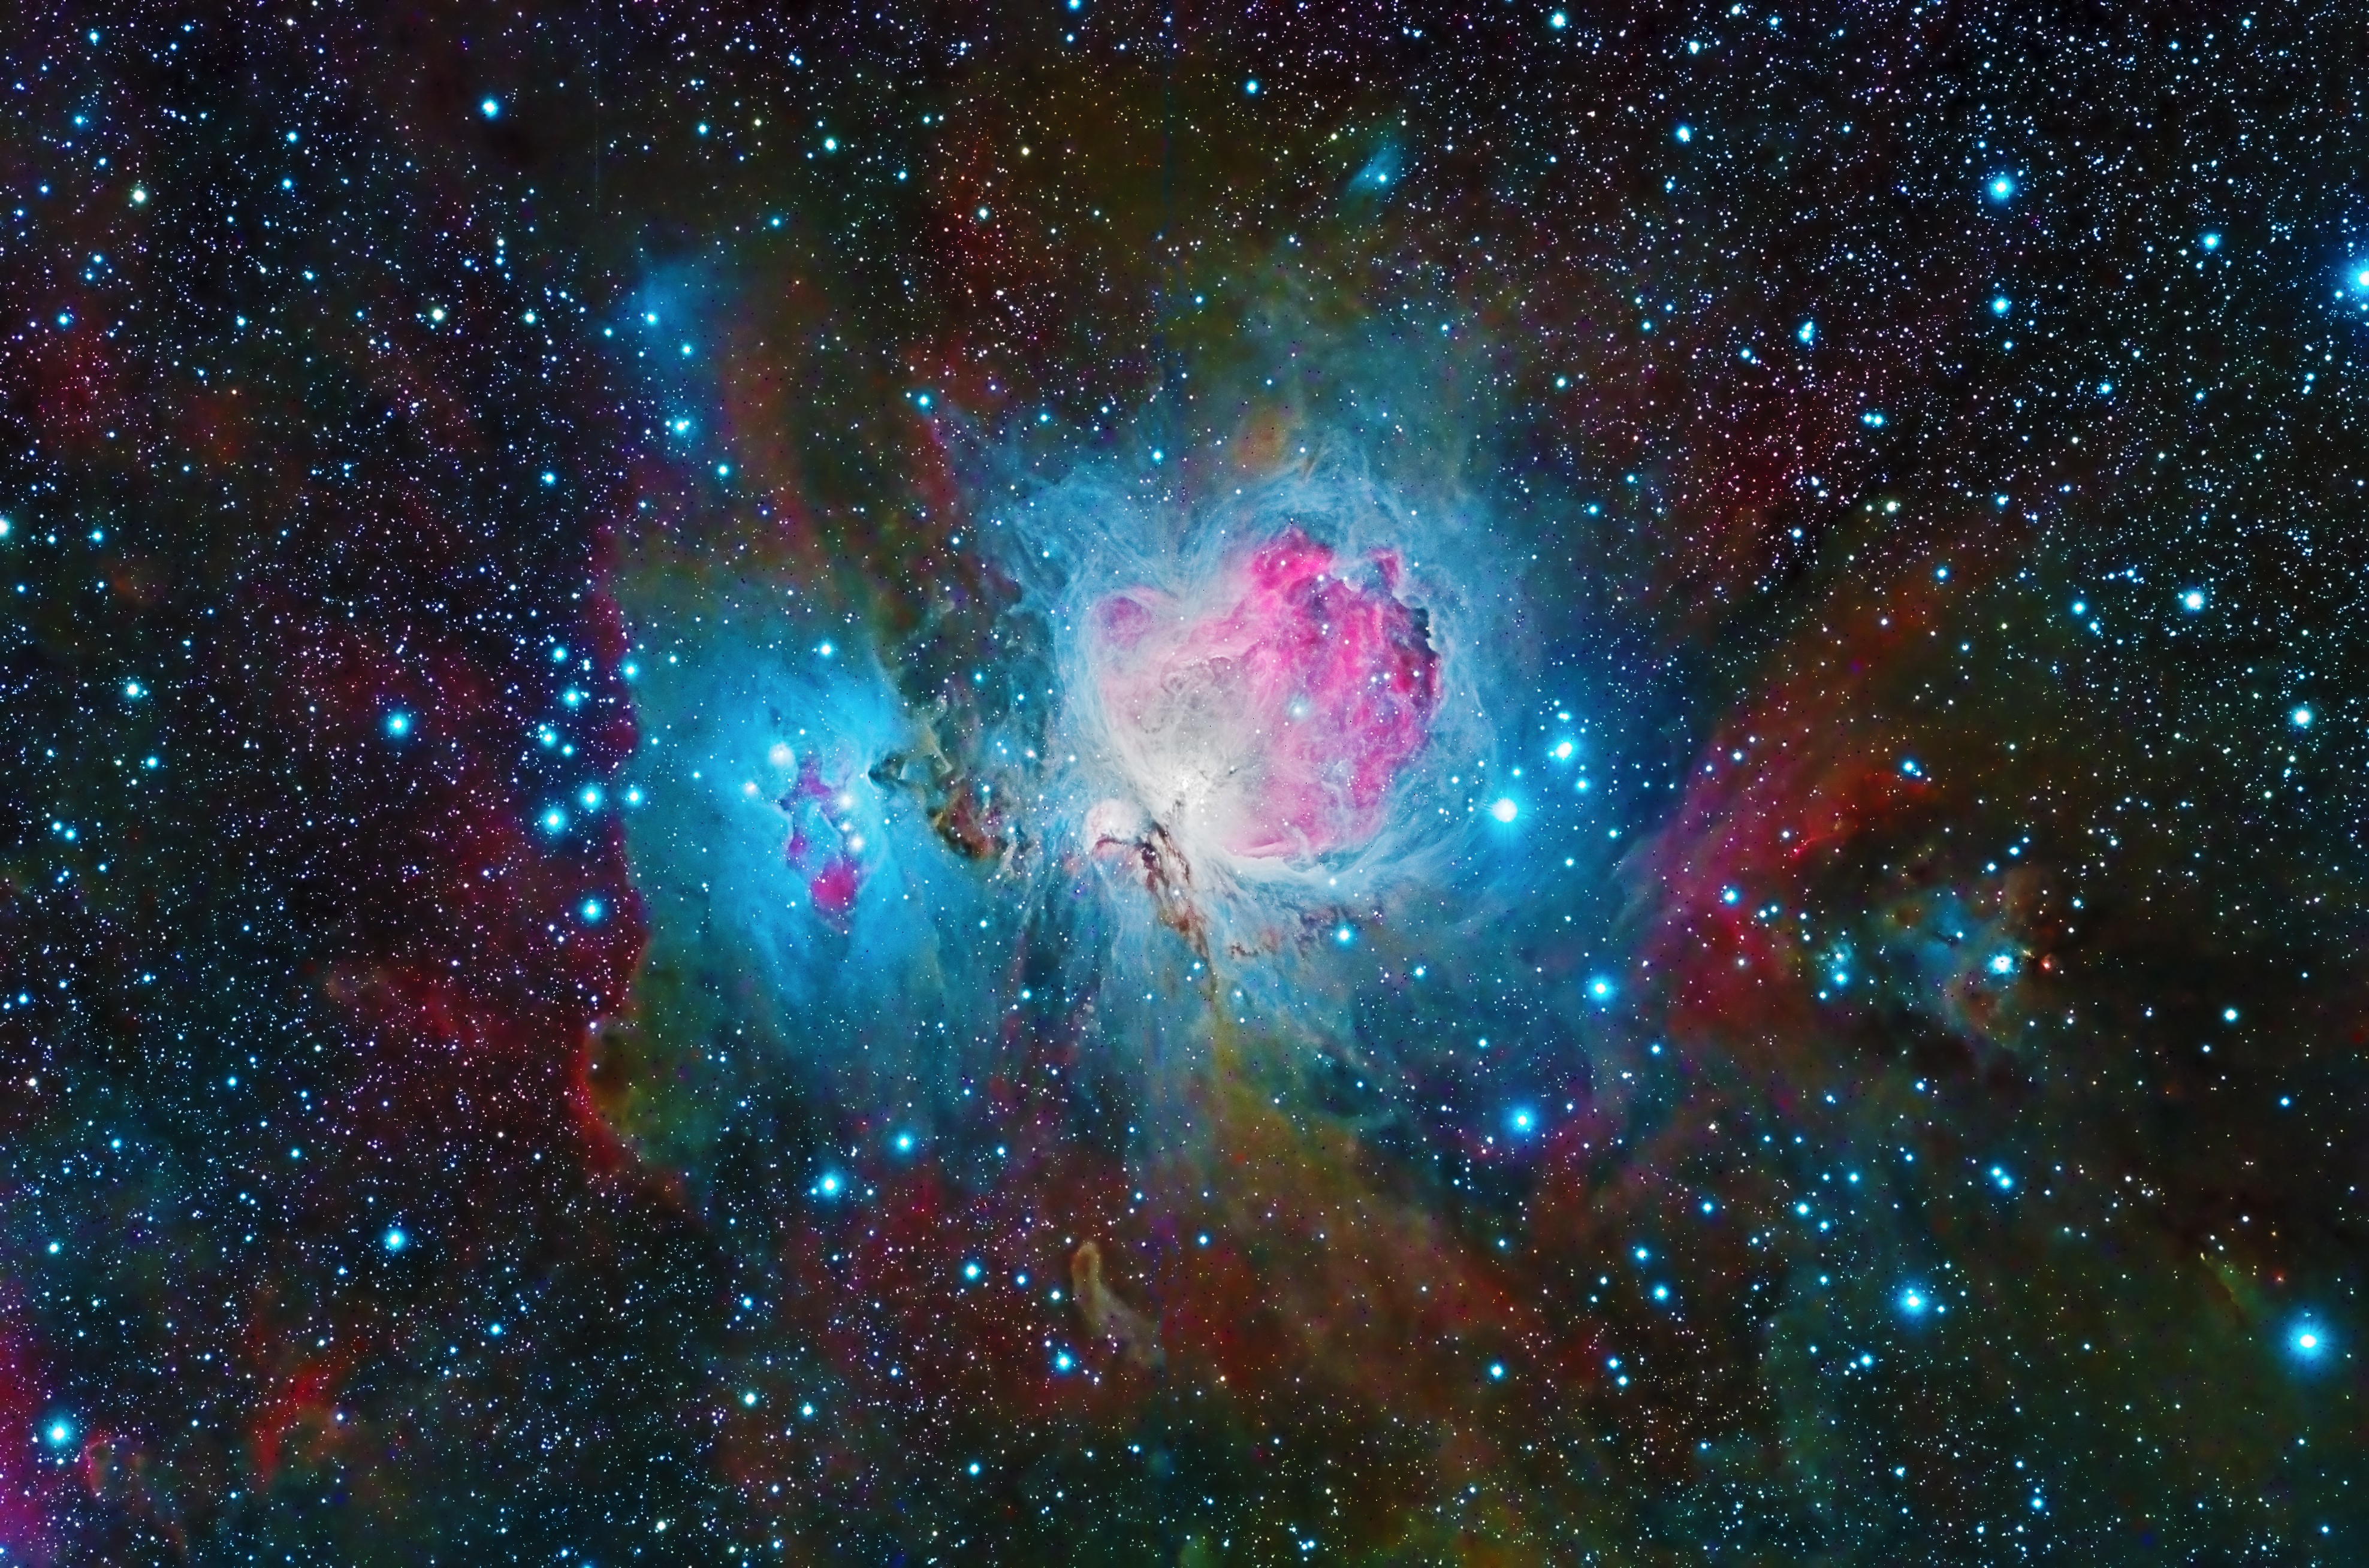 Nebula space galaxy colorful 4k hd nature 4k wallpapers - Space wallpaper 4k for mobile ...